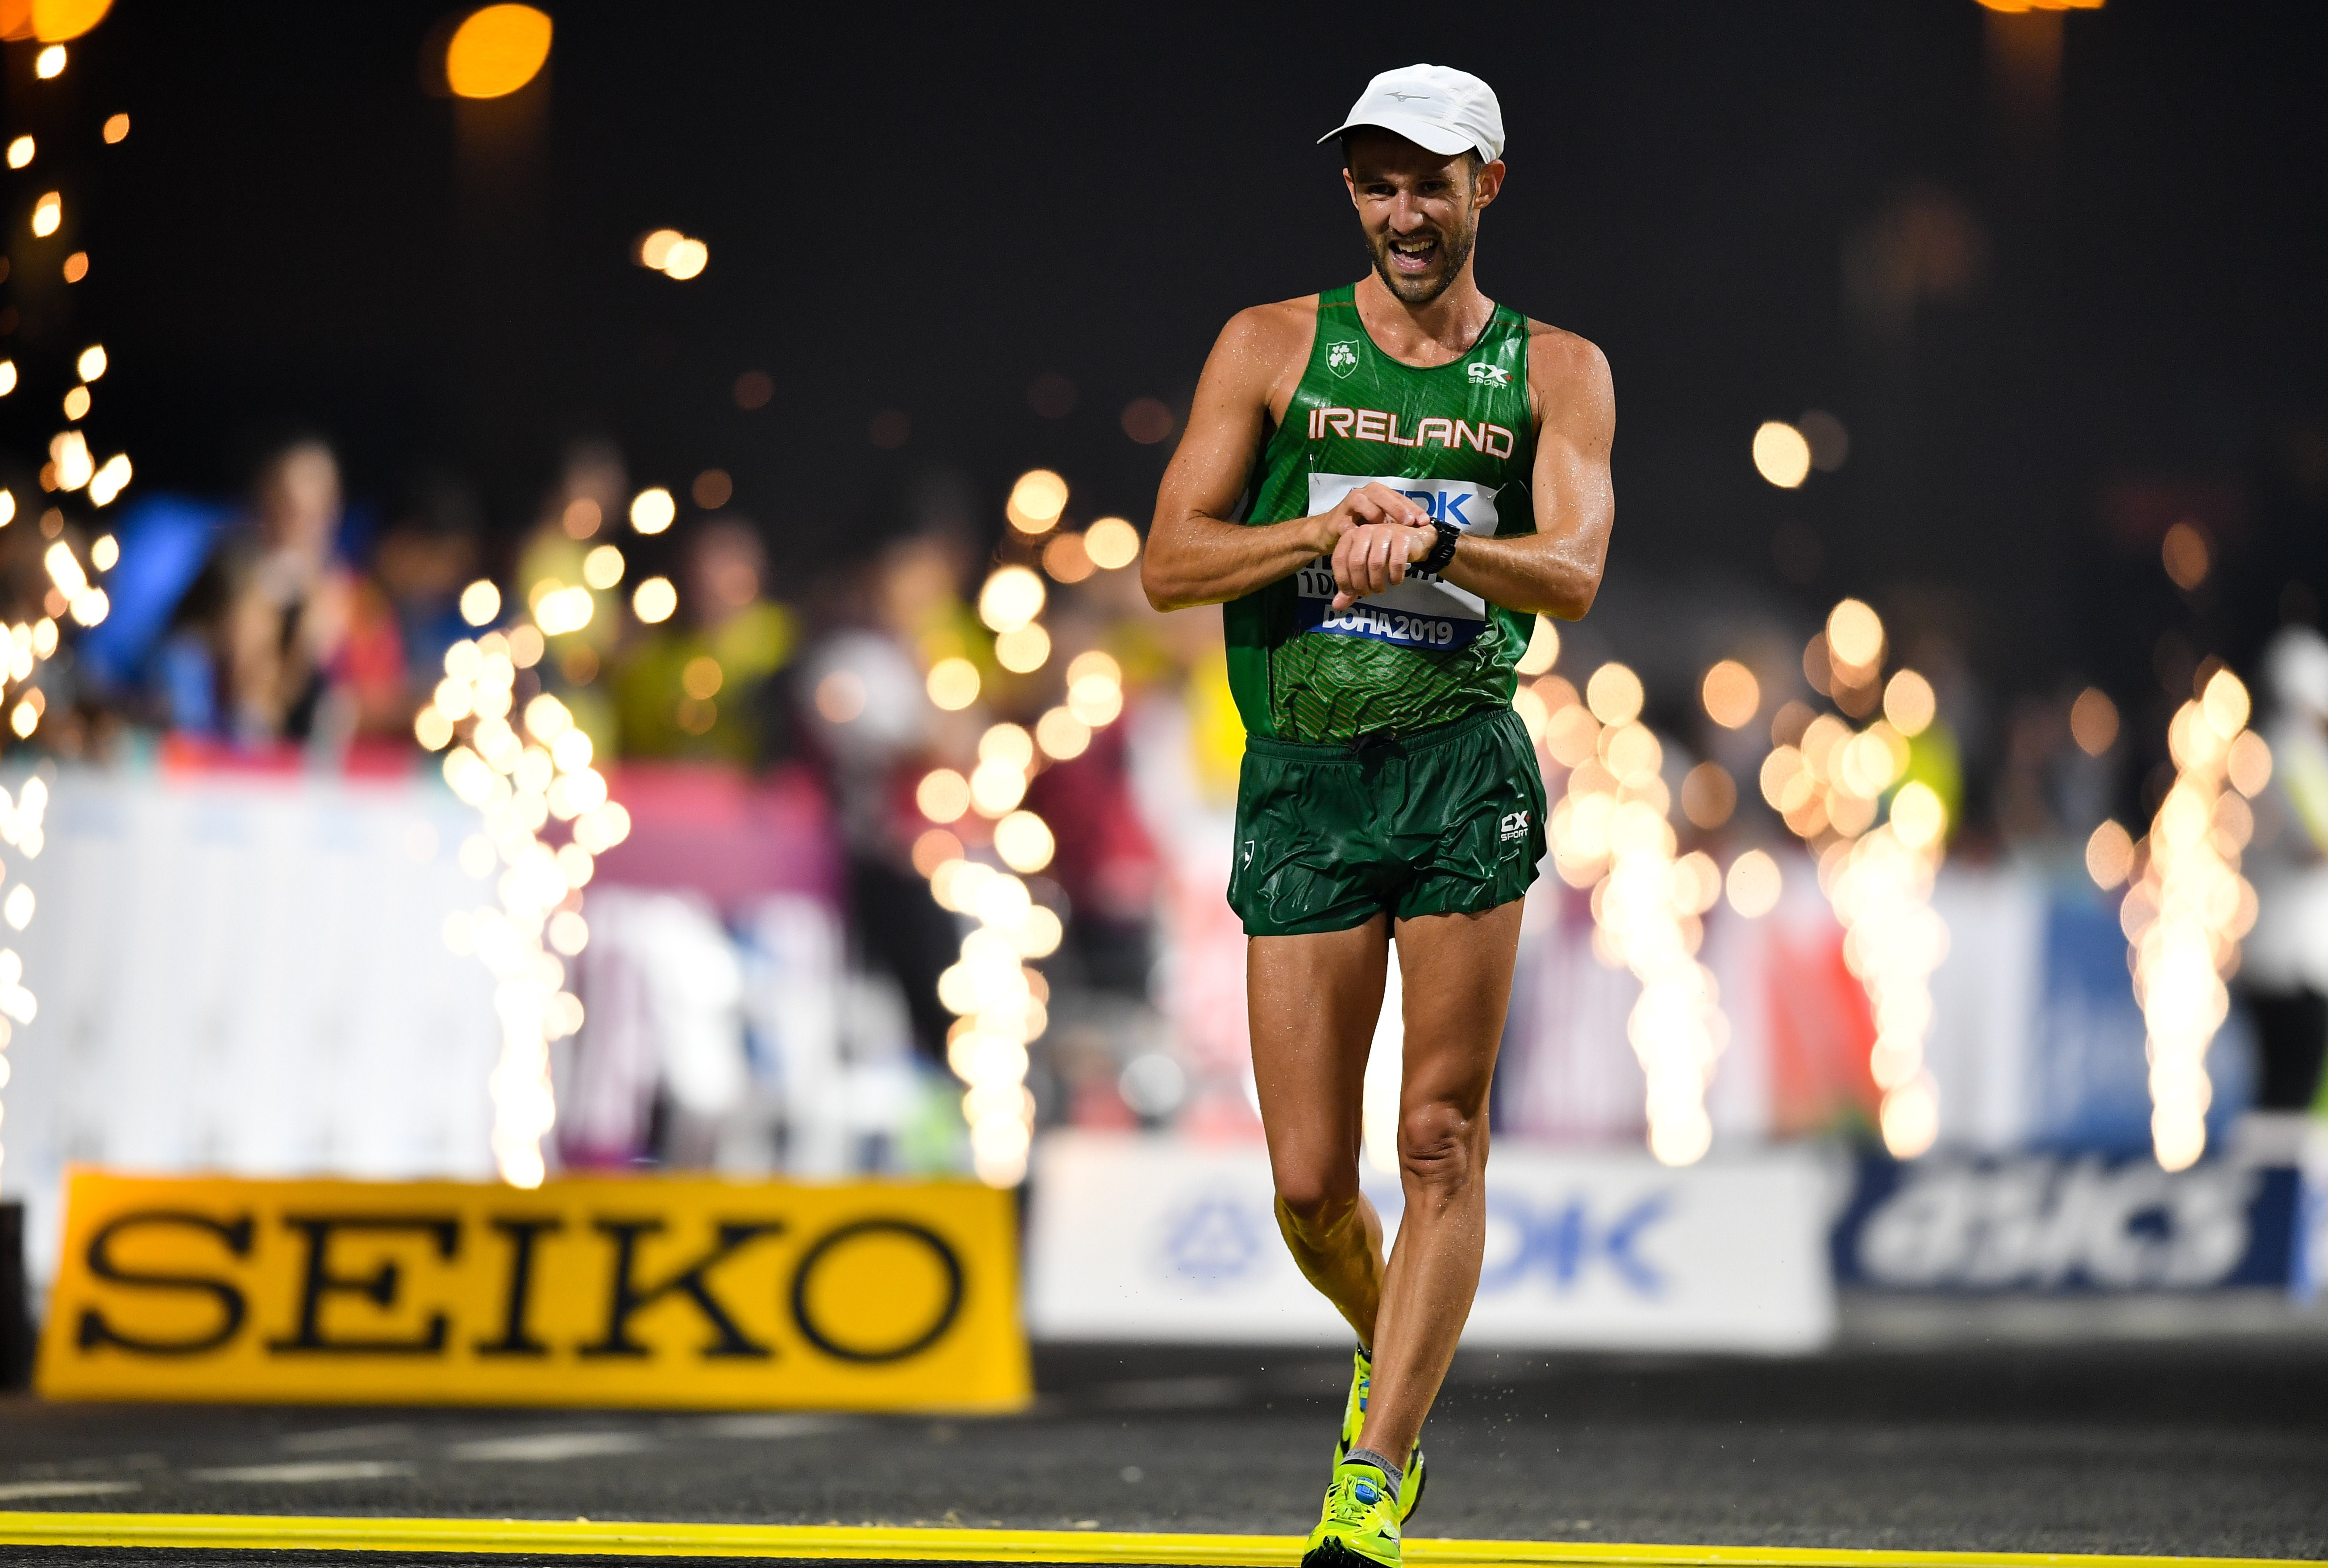 Wright battles to 31st in men's 20km race walk